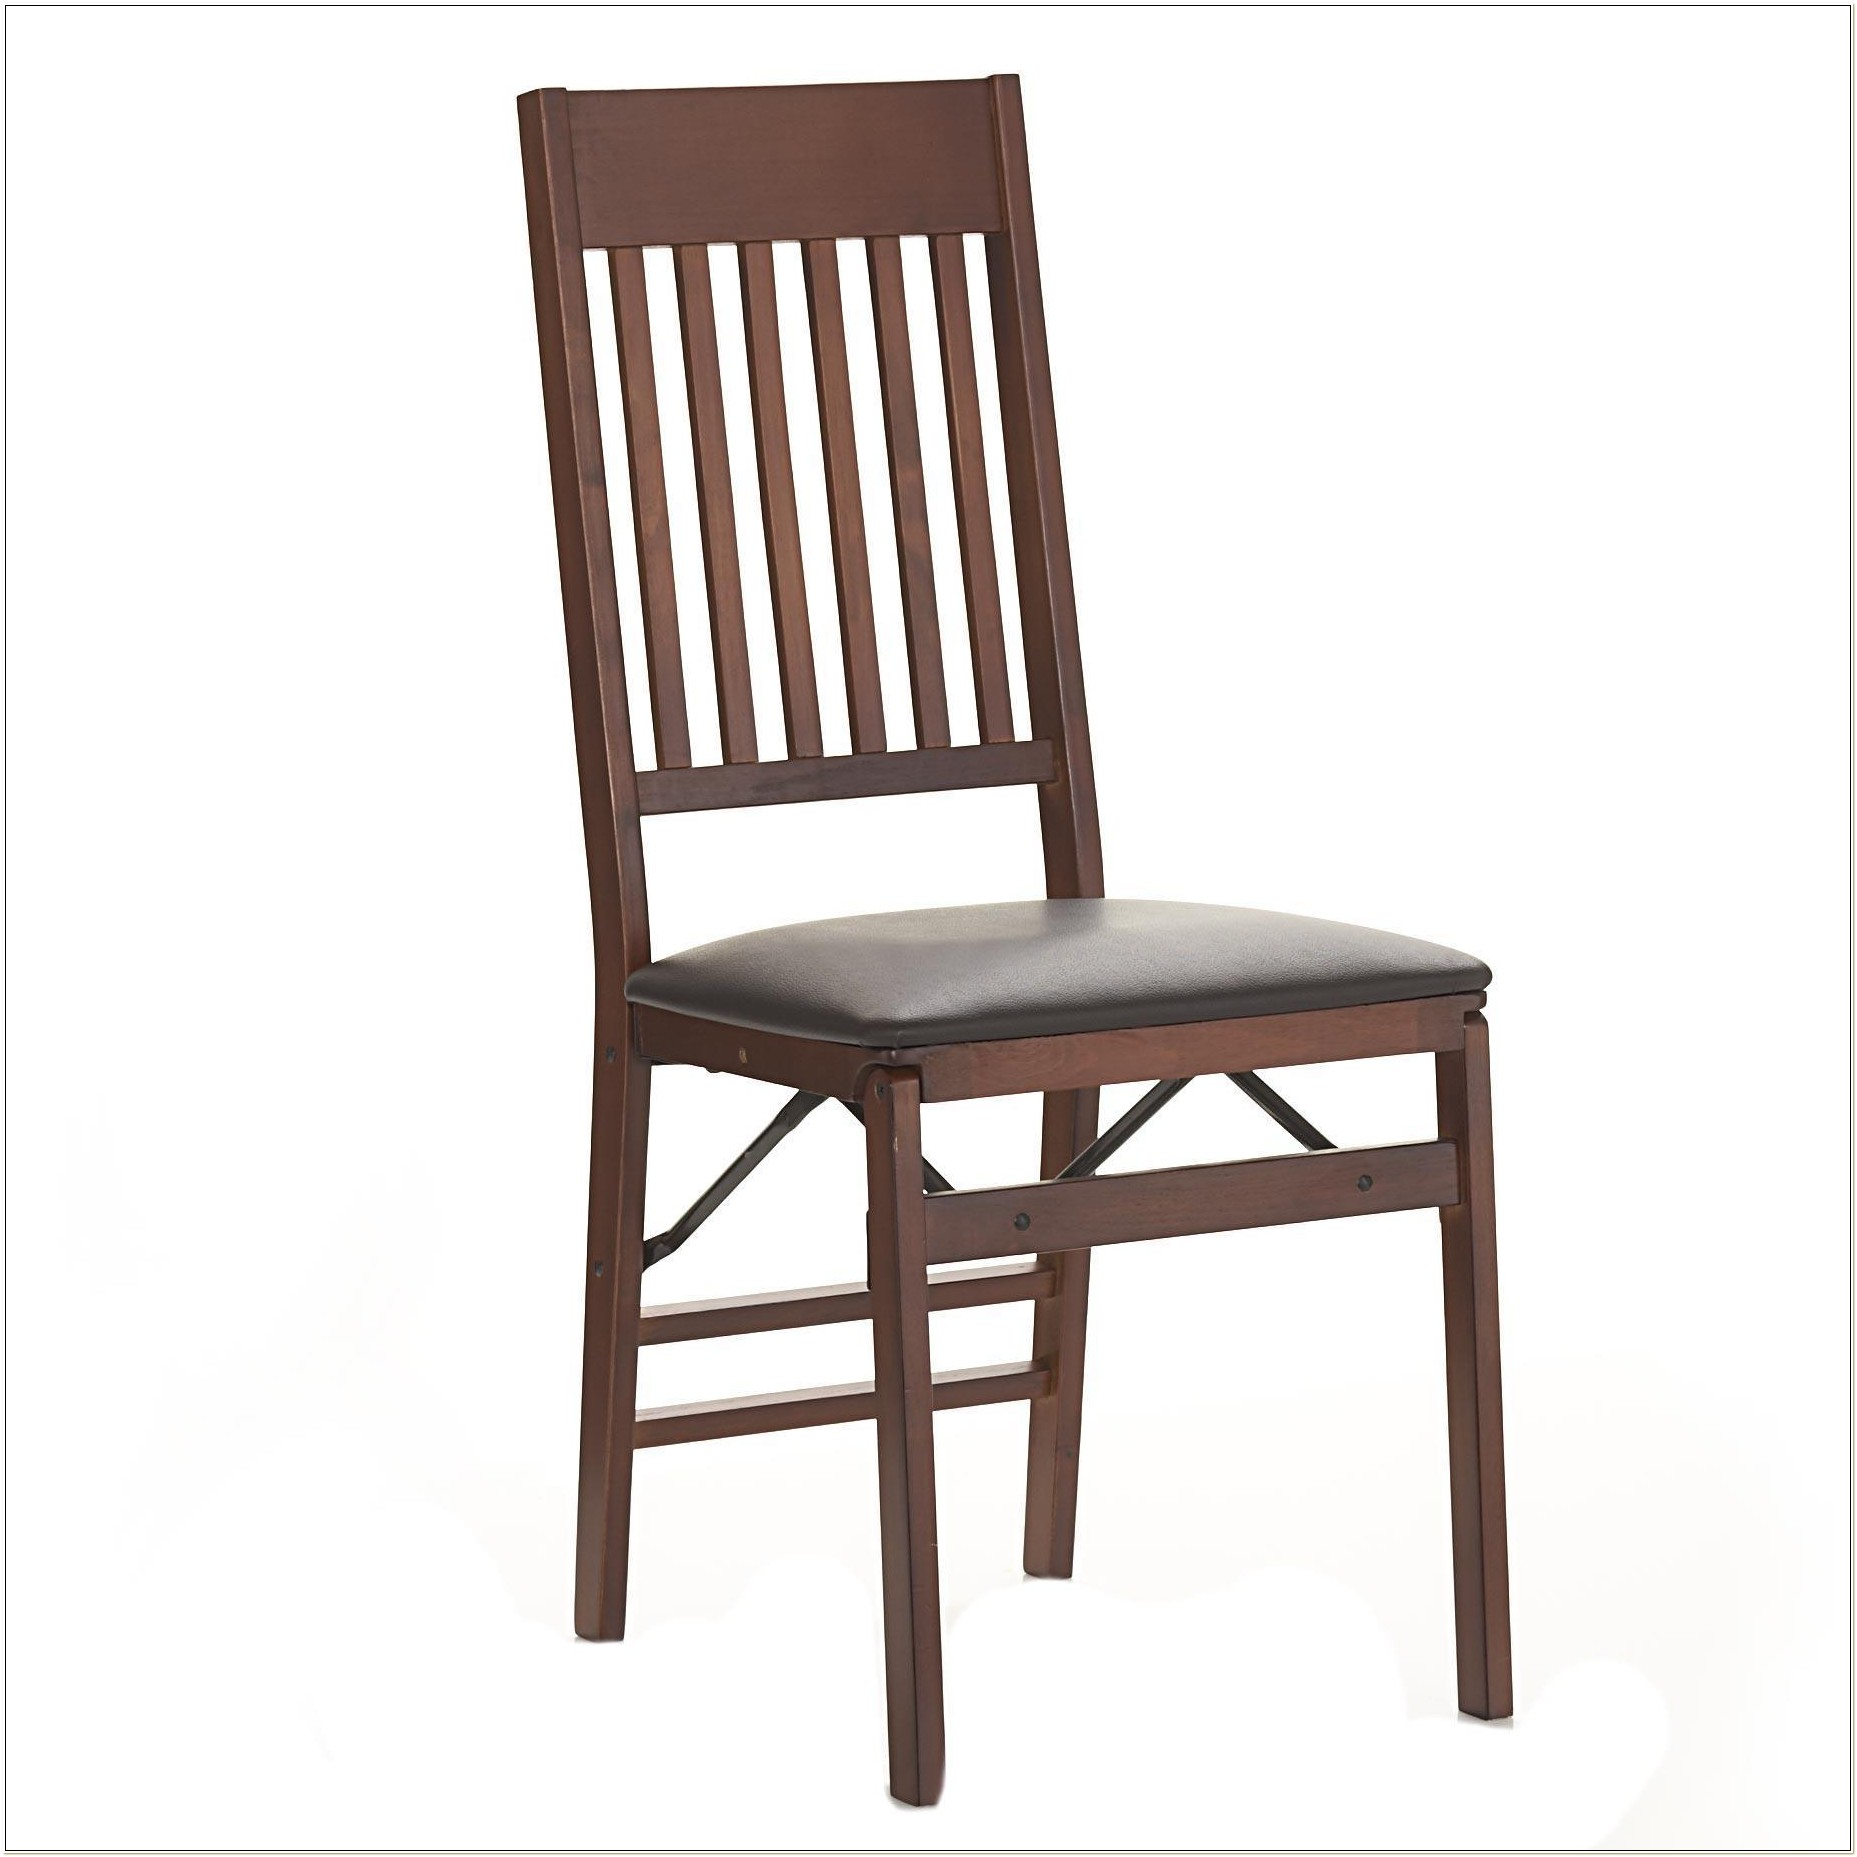 Cosco Wood Folding Chair Mission